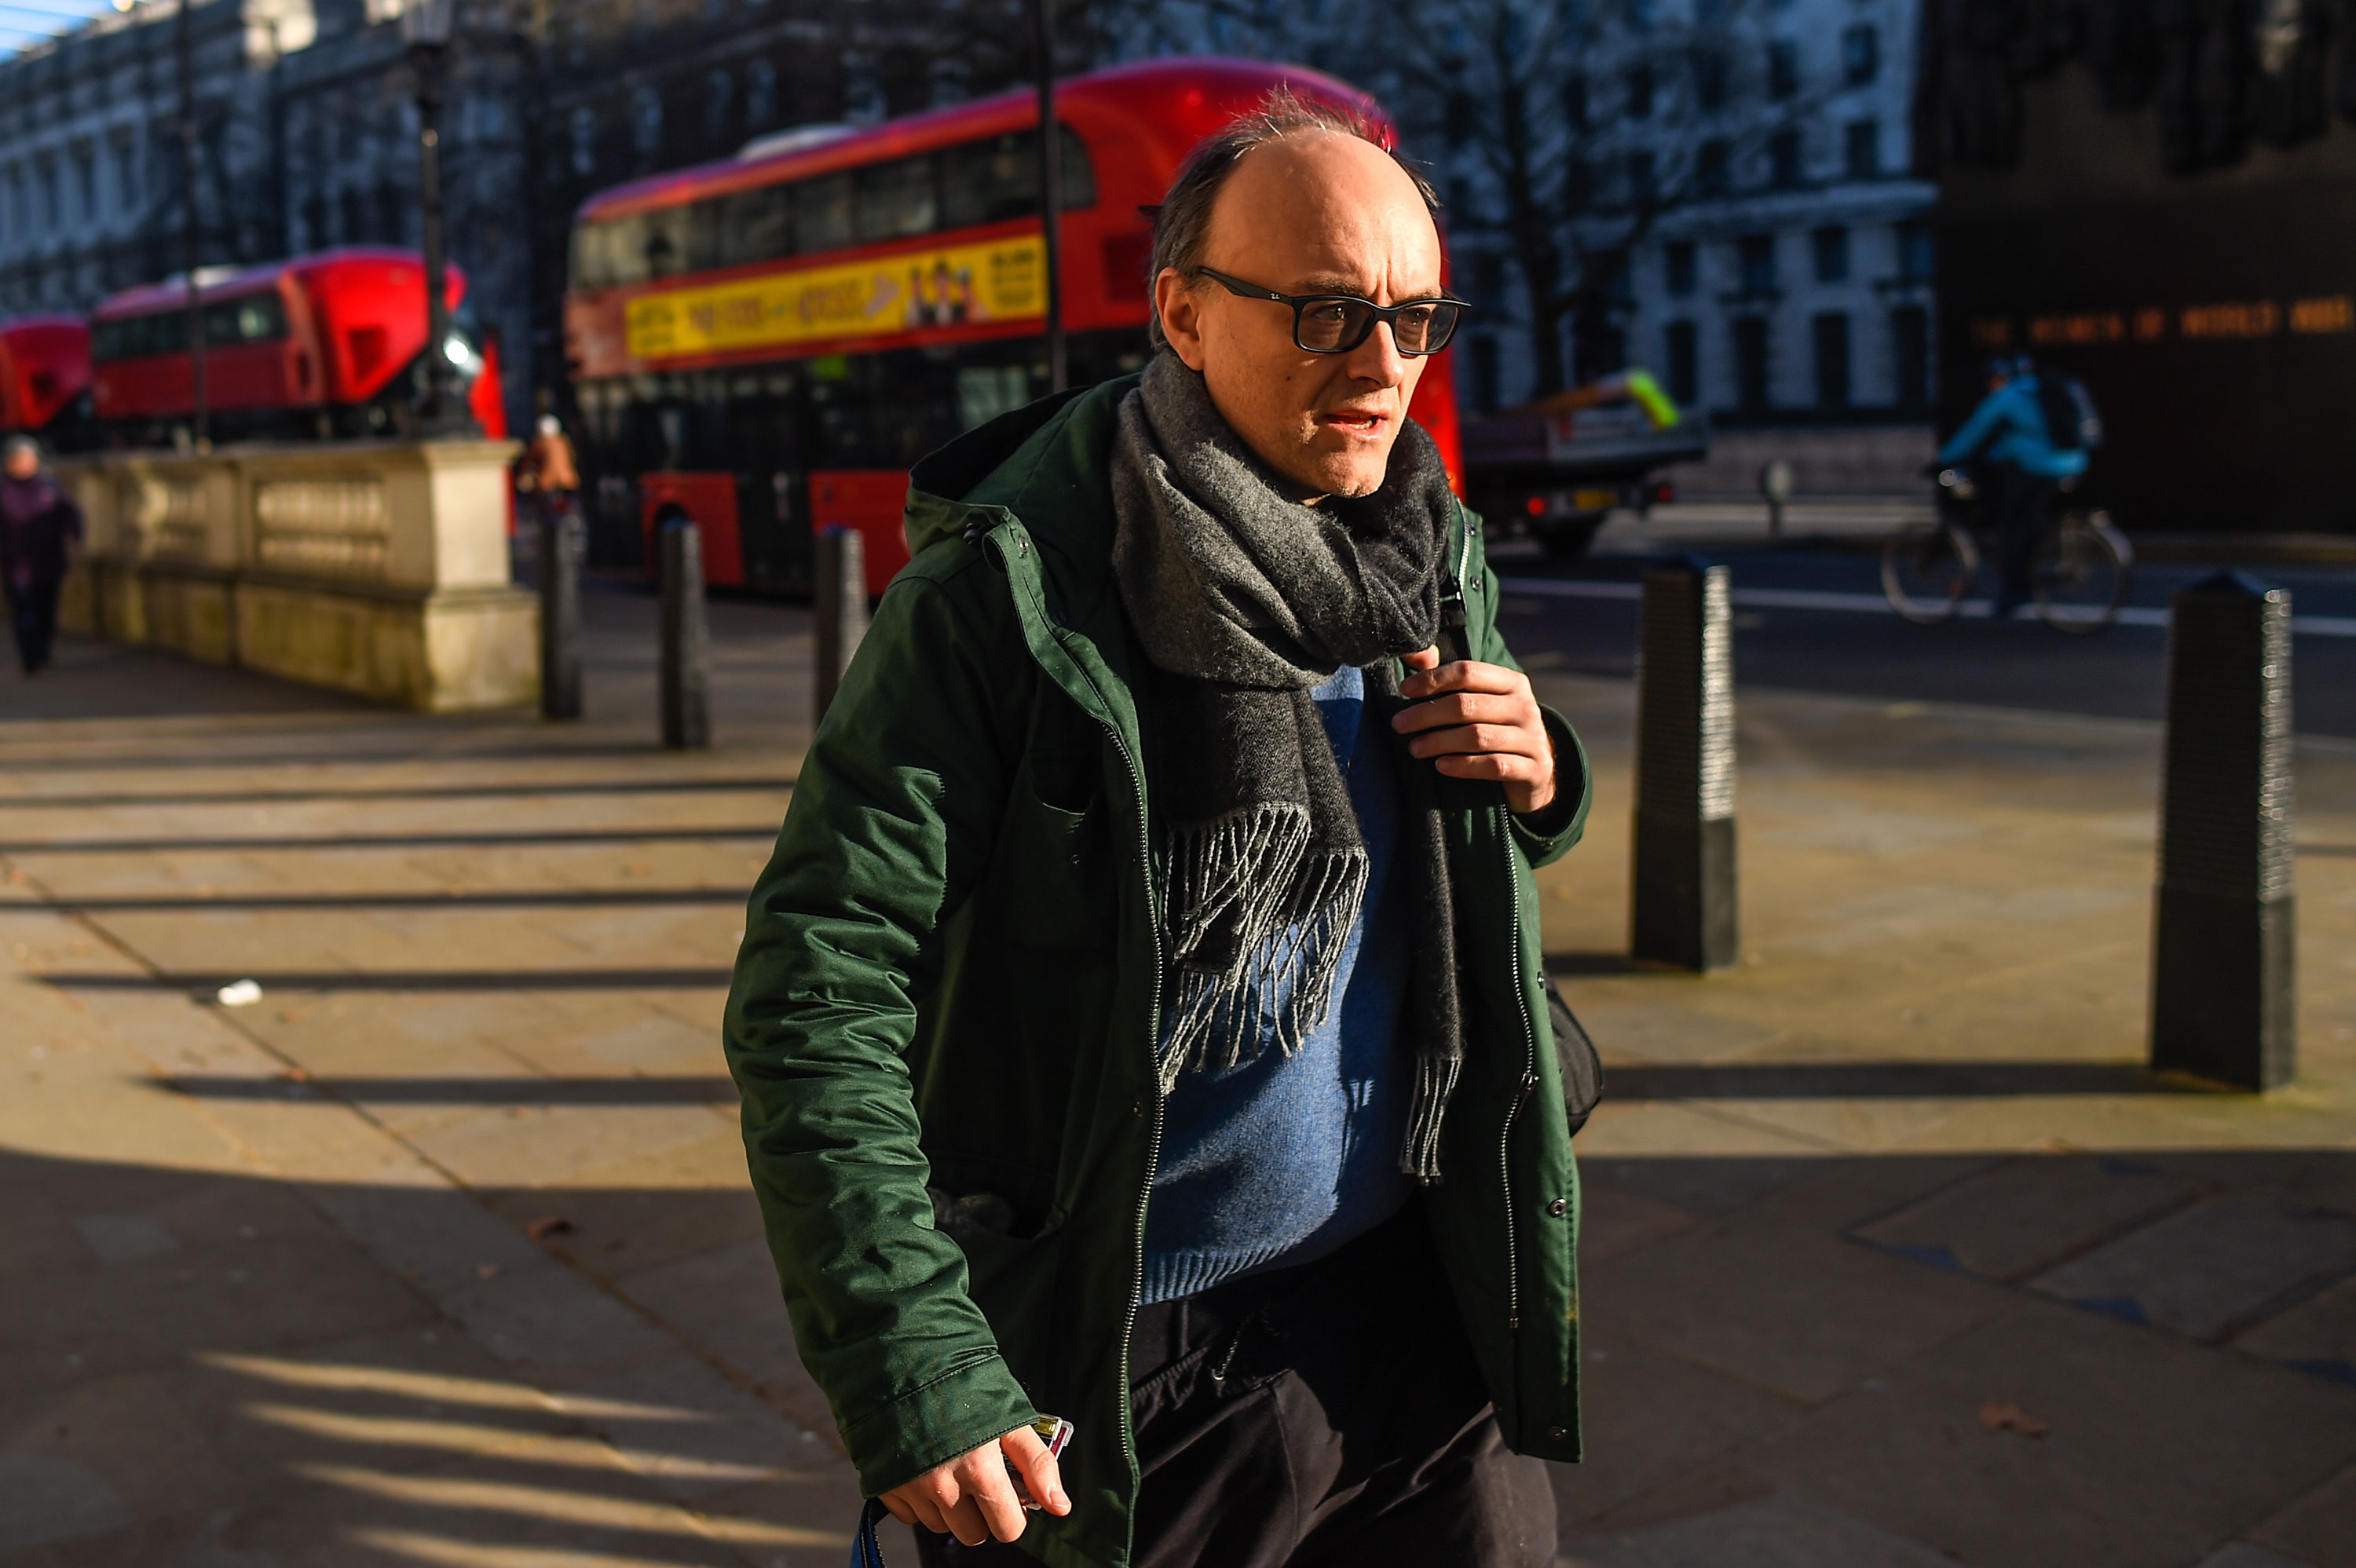 Dominic Cummings arrives at Downing Street on February 12 in London, England.